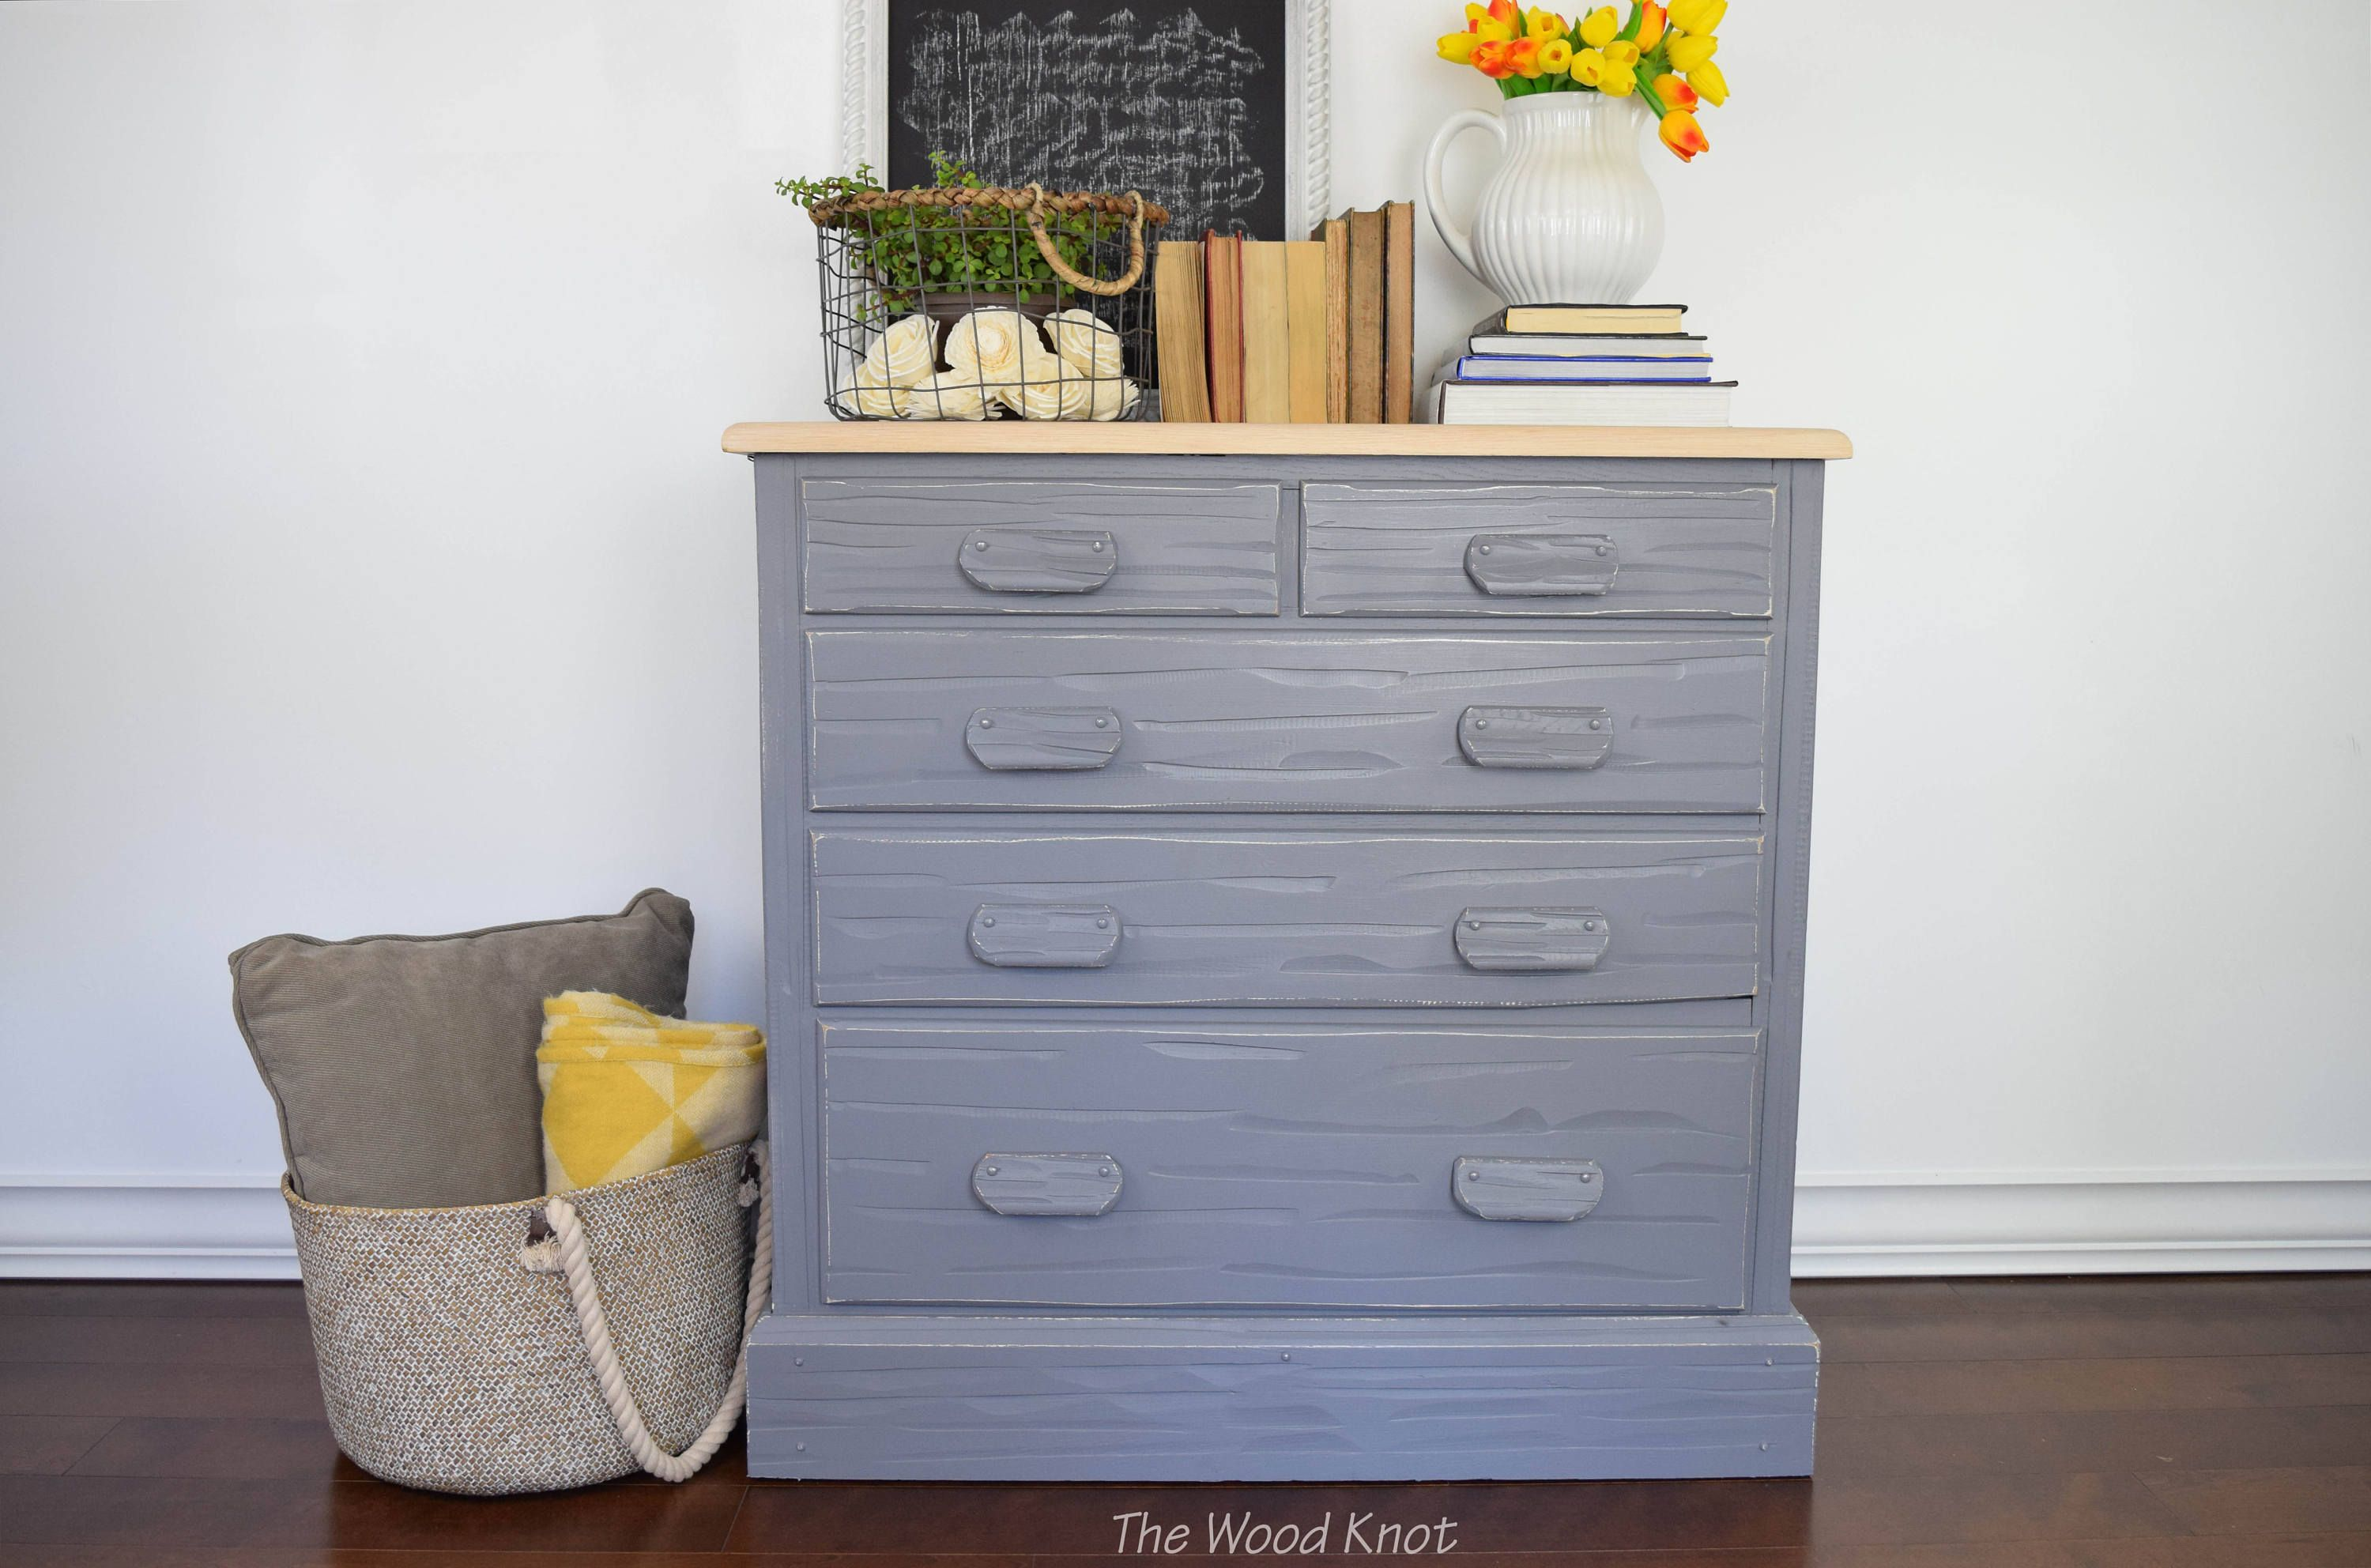 Farmhouse rustic gray and off white dresser. Distressed